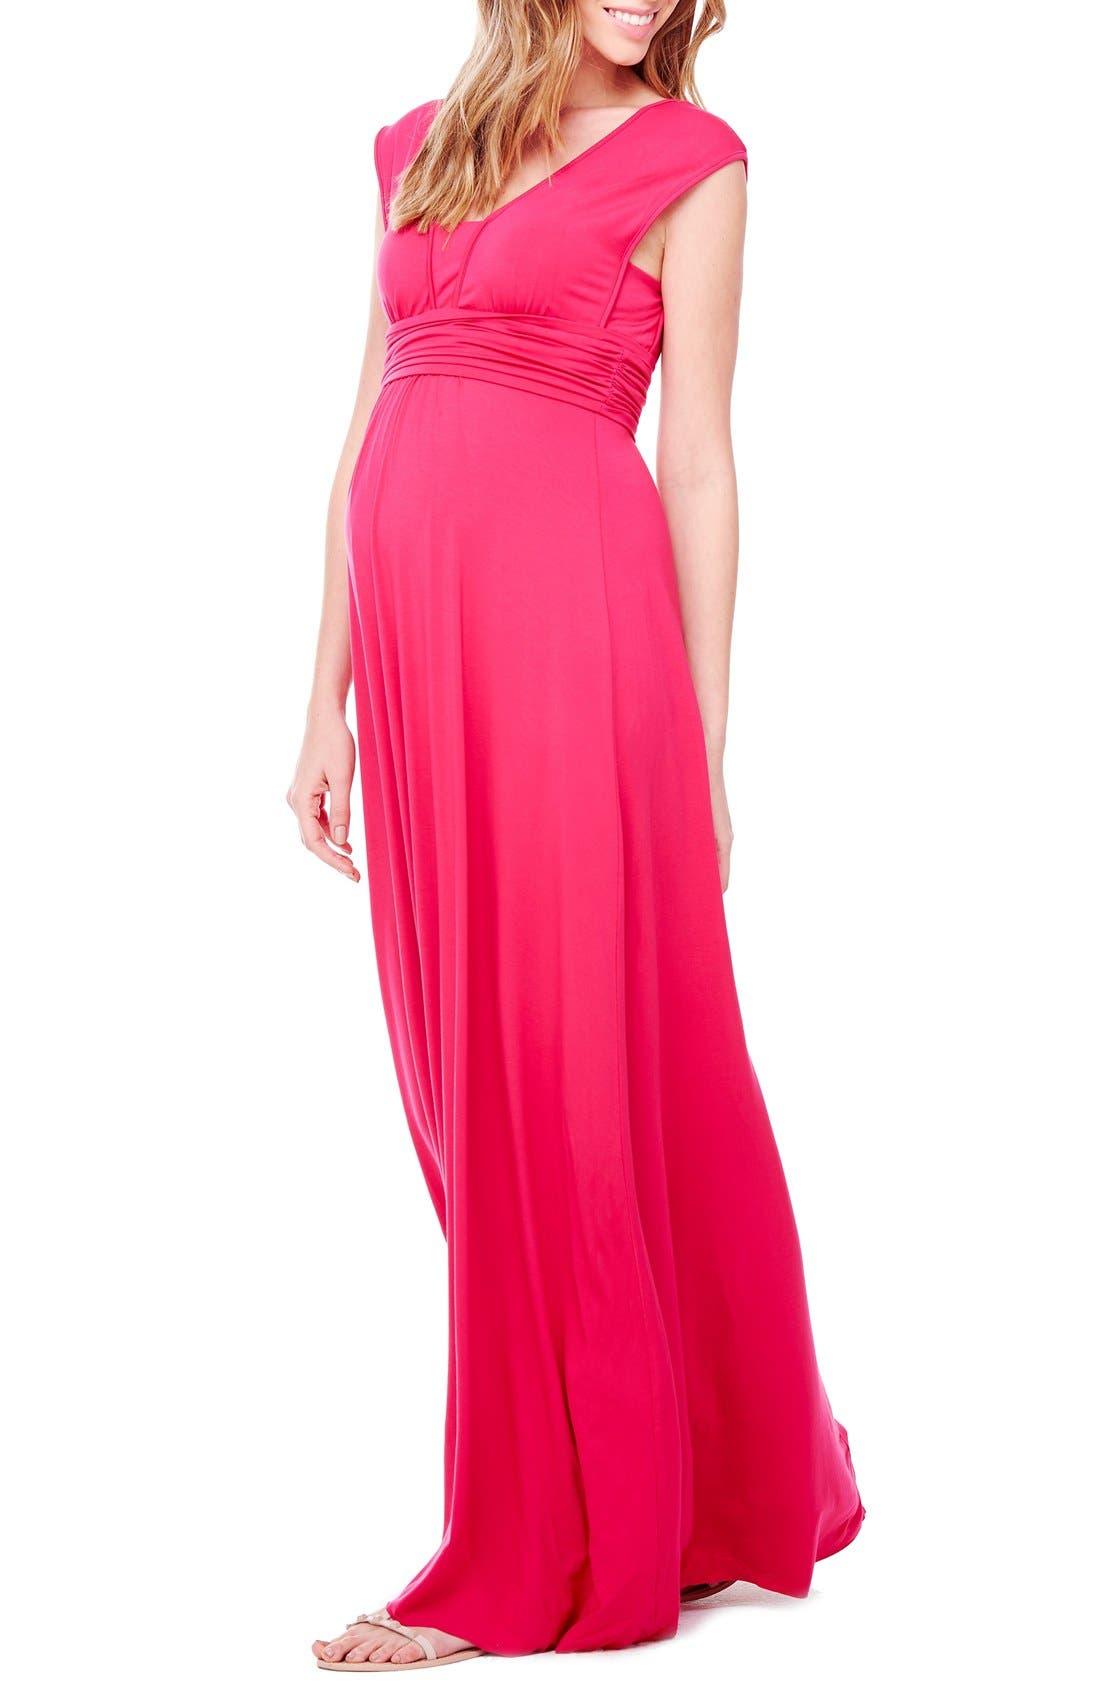 Main Image - Ingrid & Isabel® Empire Waist Maternity Maxi Dress